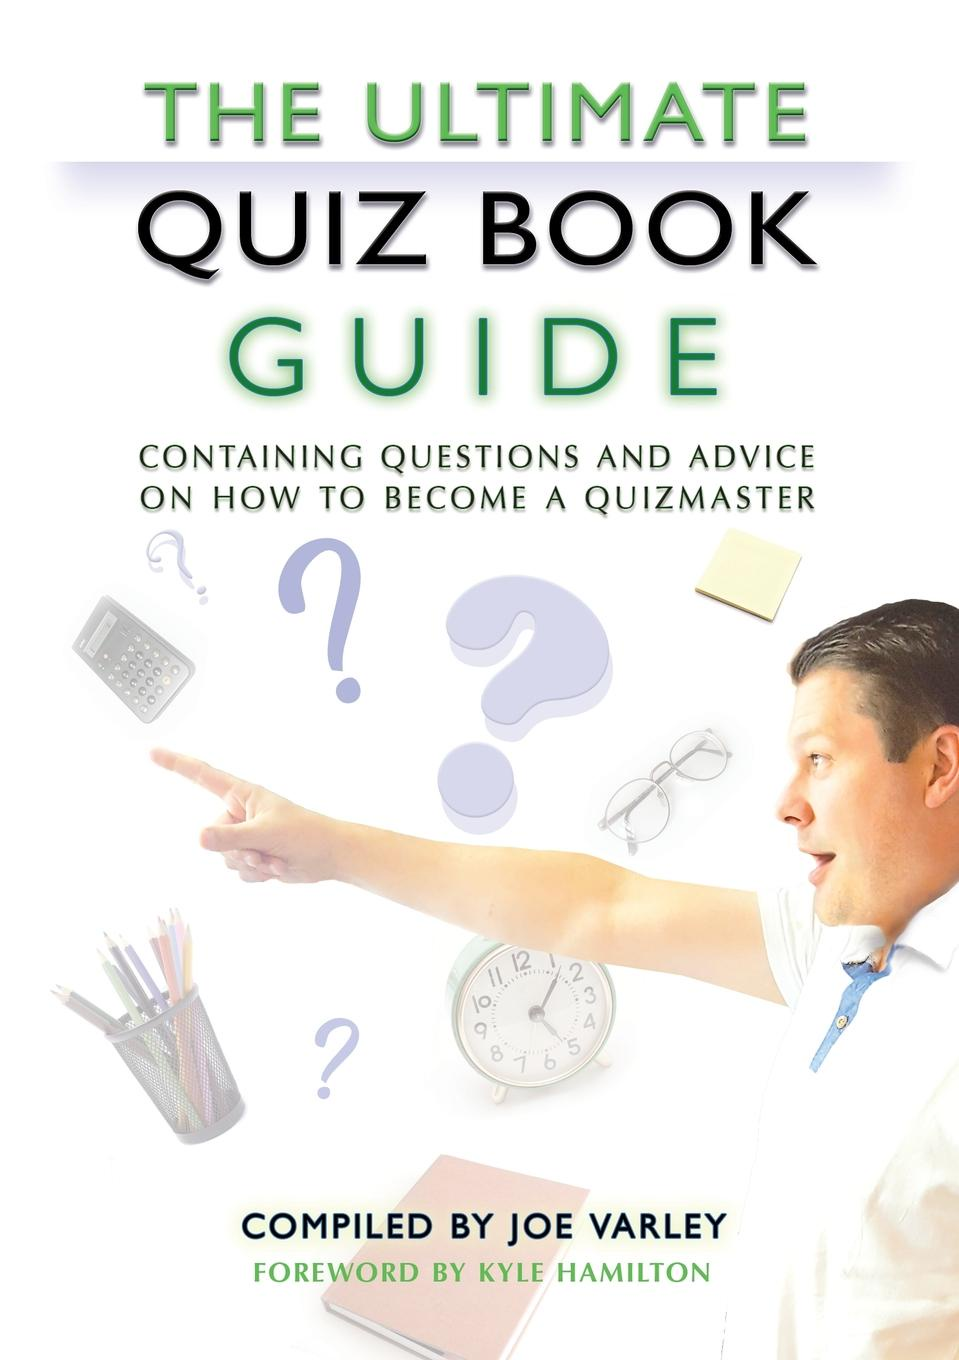 Joe Varley The Ultimate Quiz Book Guide. Containing questions and advice on how to become a quizmaster tool quiz